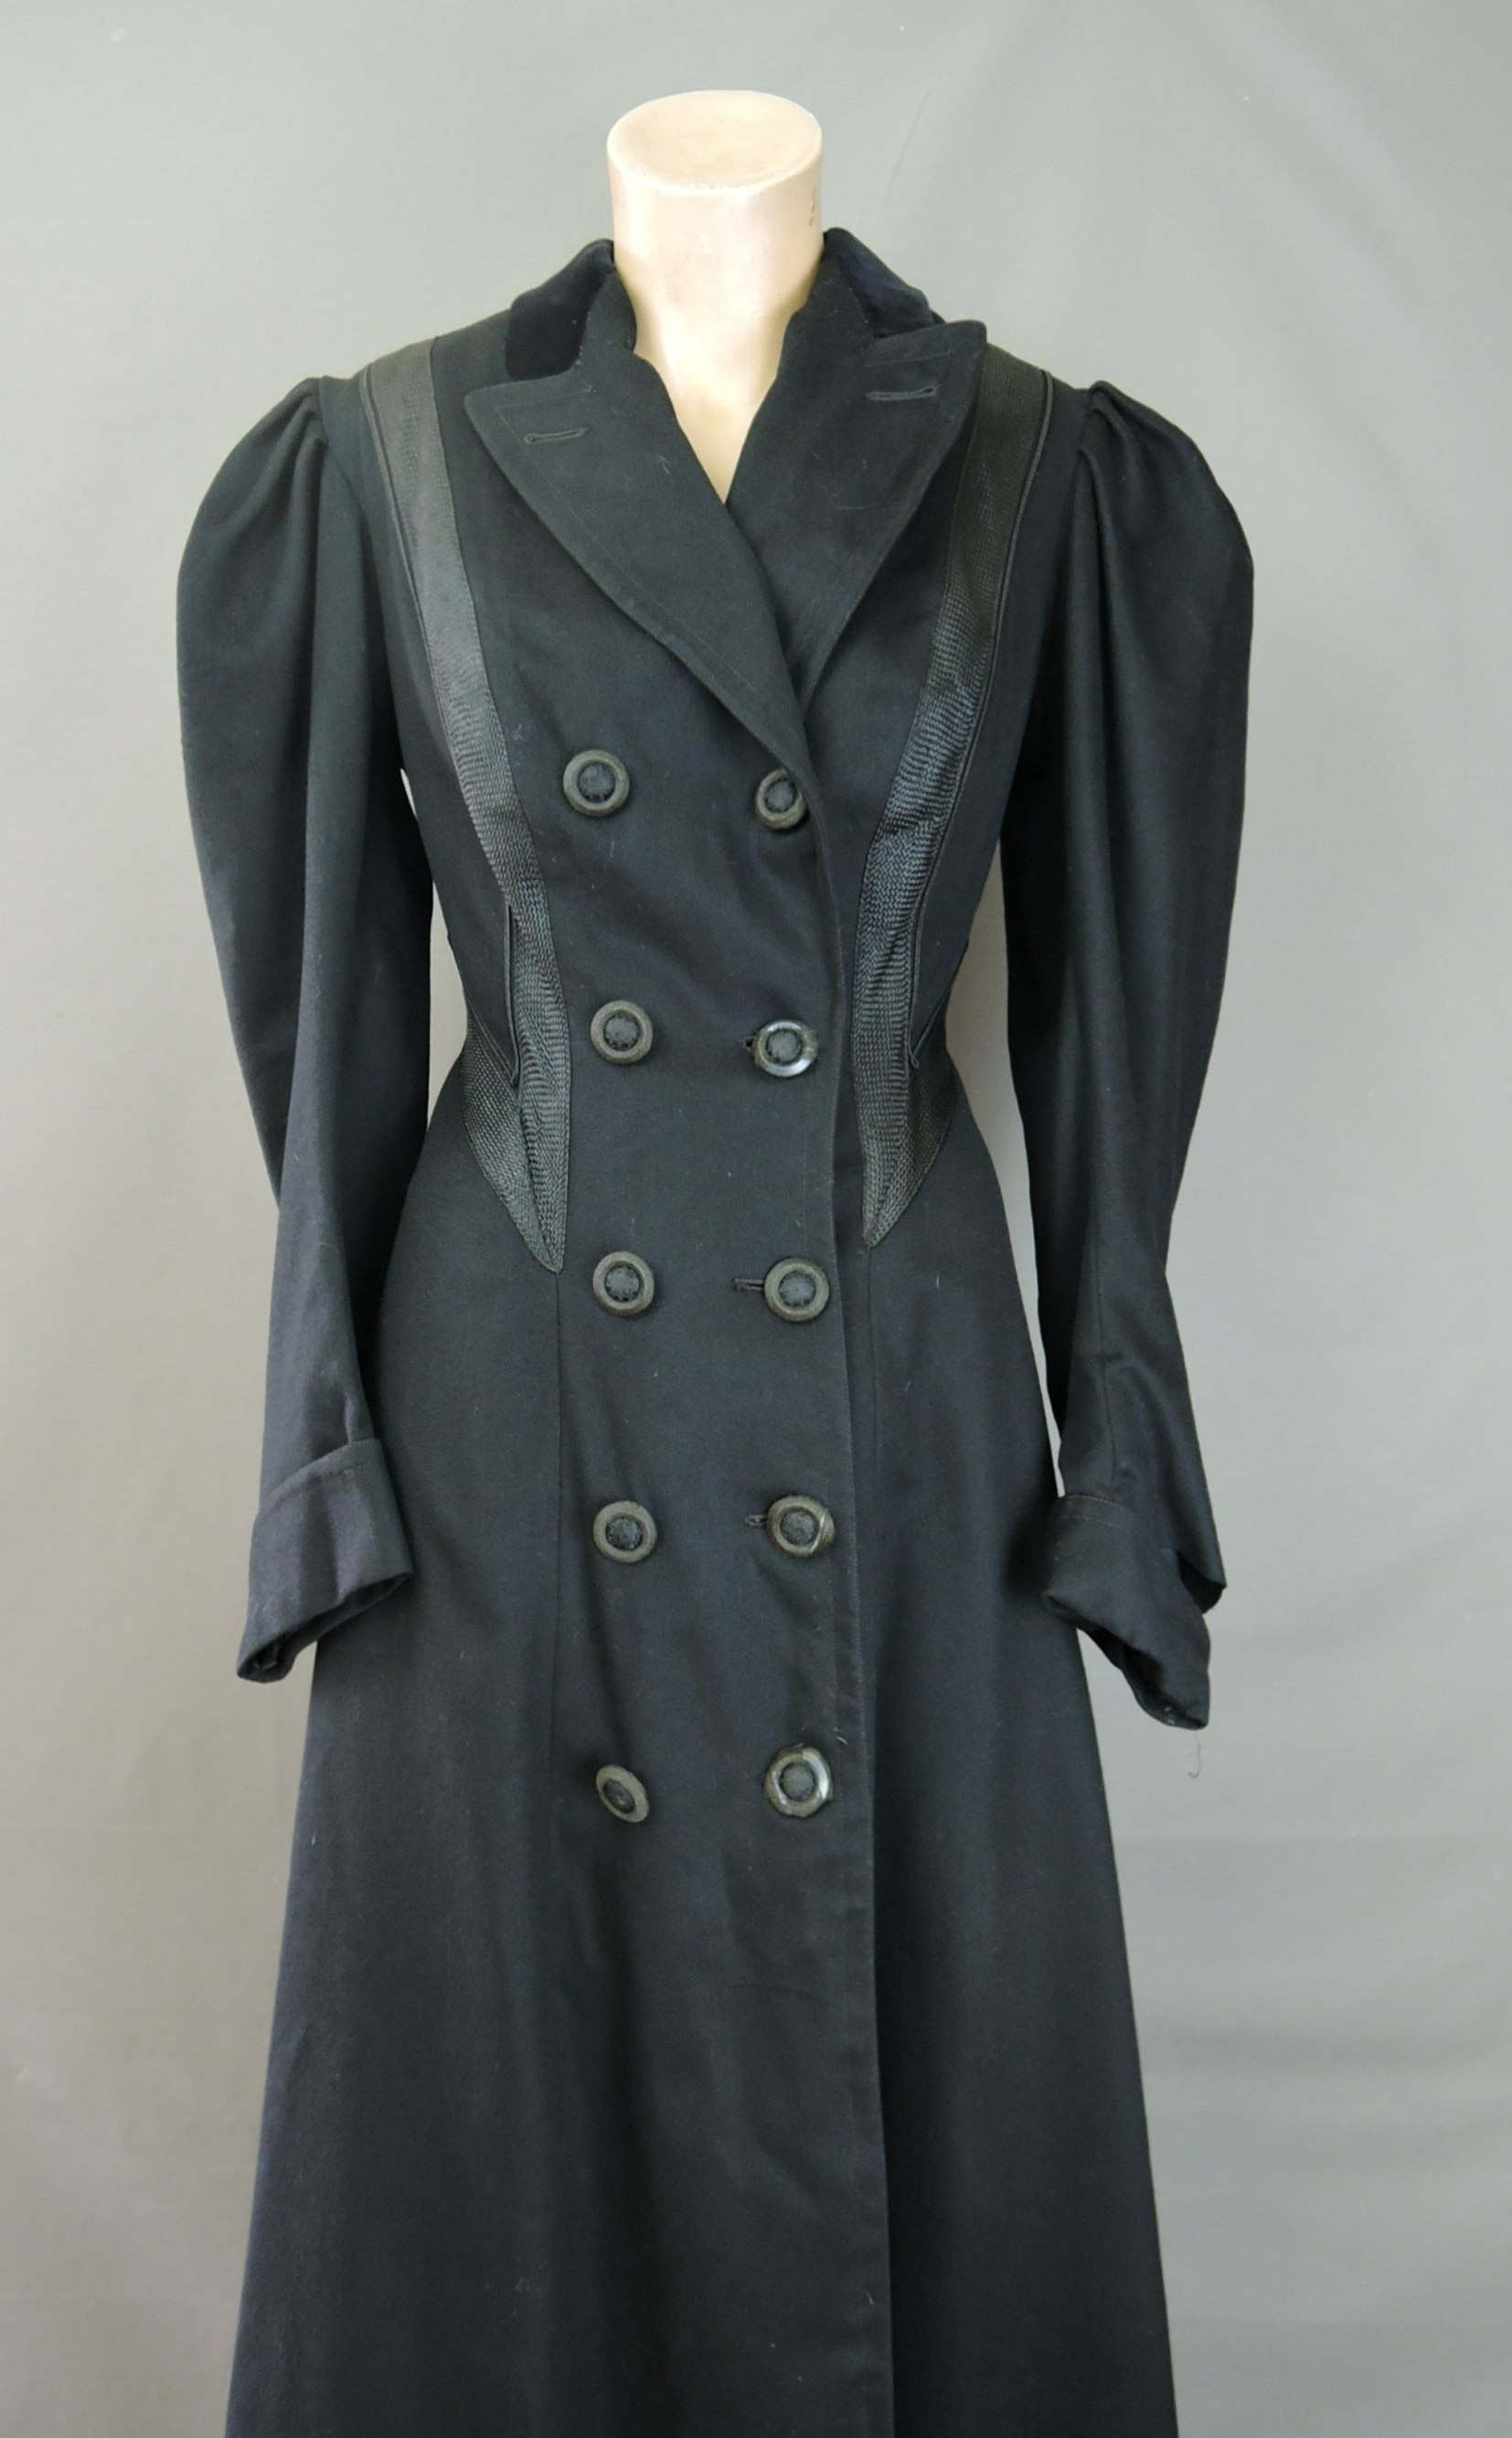 Victorian 1800s Long Coat, Fitted Black Wool fits 34 inch bust, Rayon Trim, Puffed Shoulders